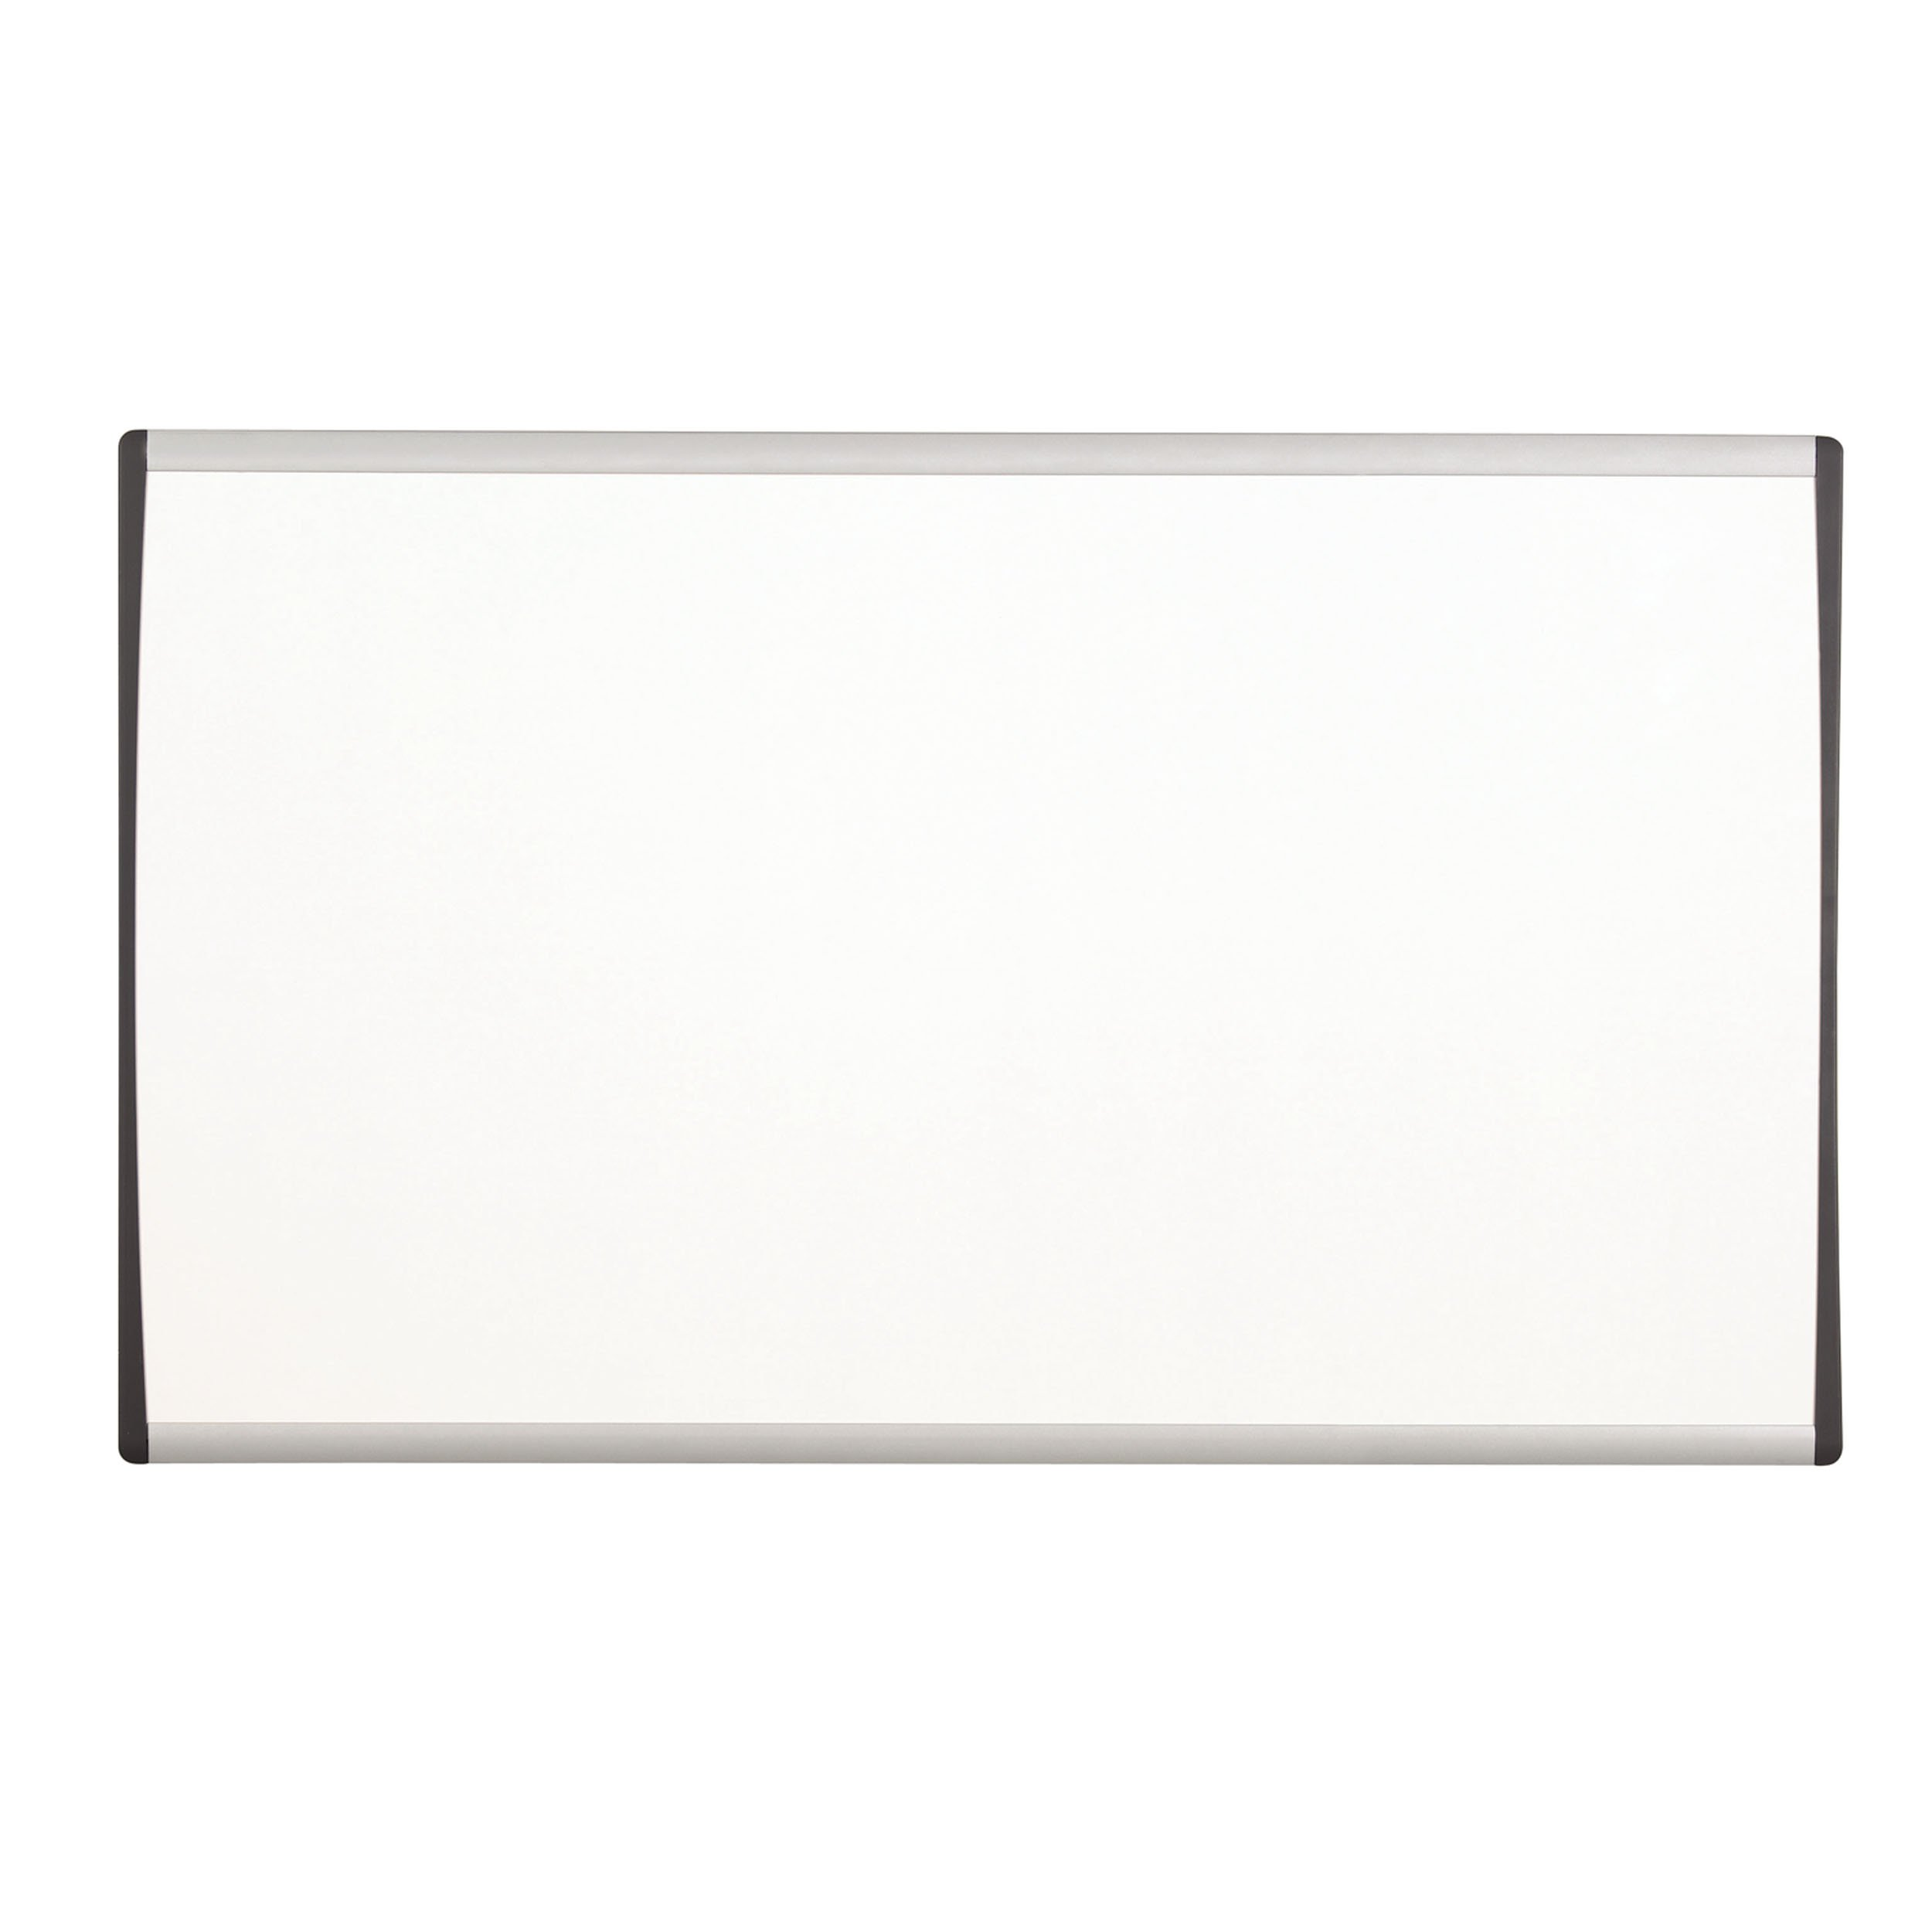 "Quartet Dry Erase Board, Magnetic, 30"" x 18"", Whiteboard, Cubicle, Arc, Aluminum Frame (ARC3018)"